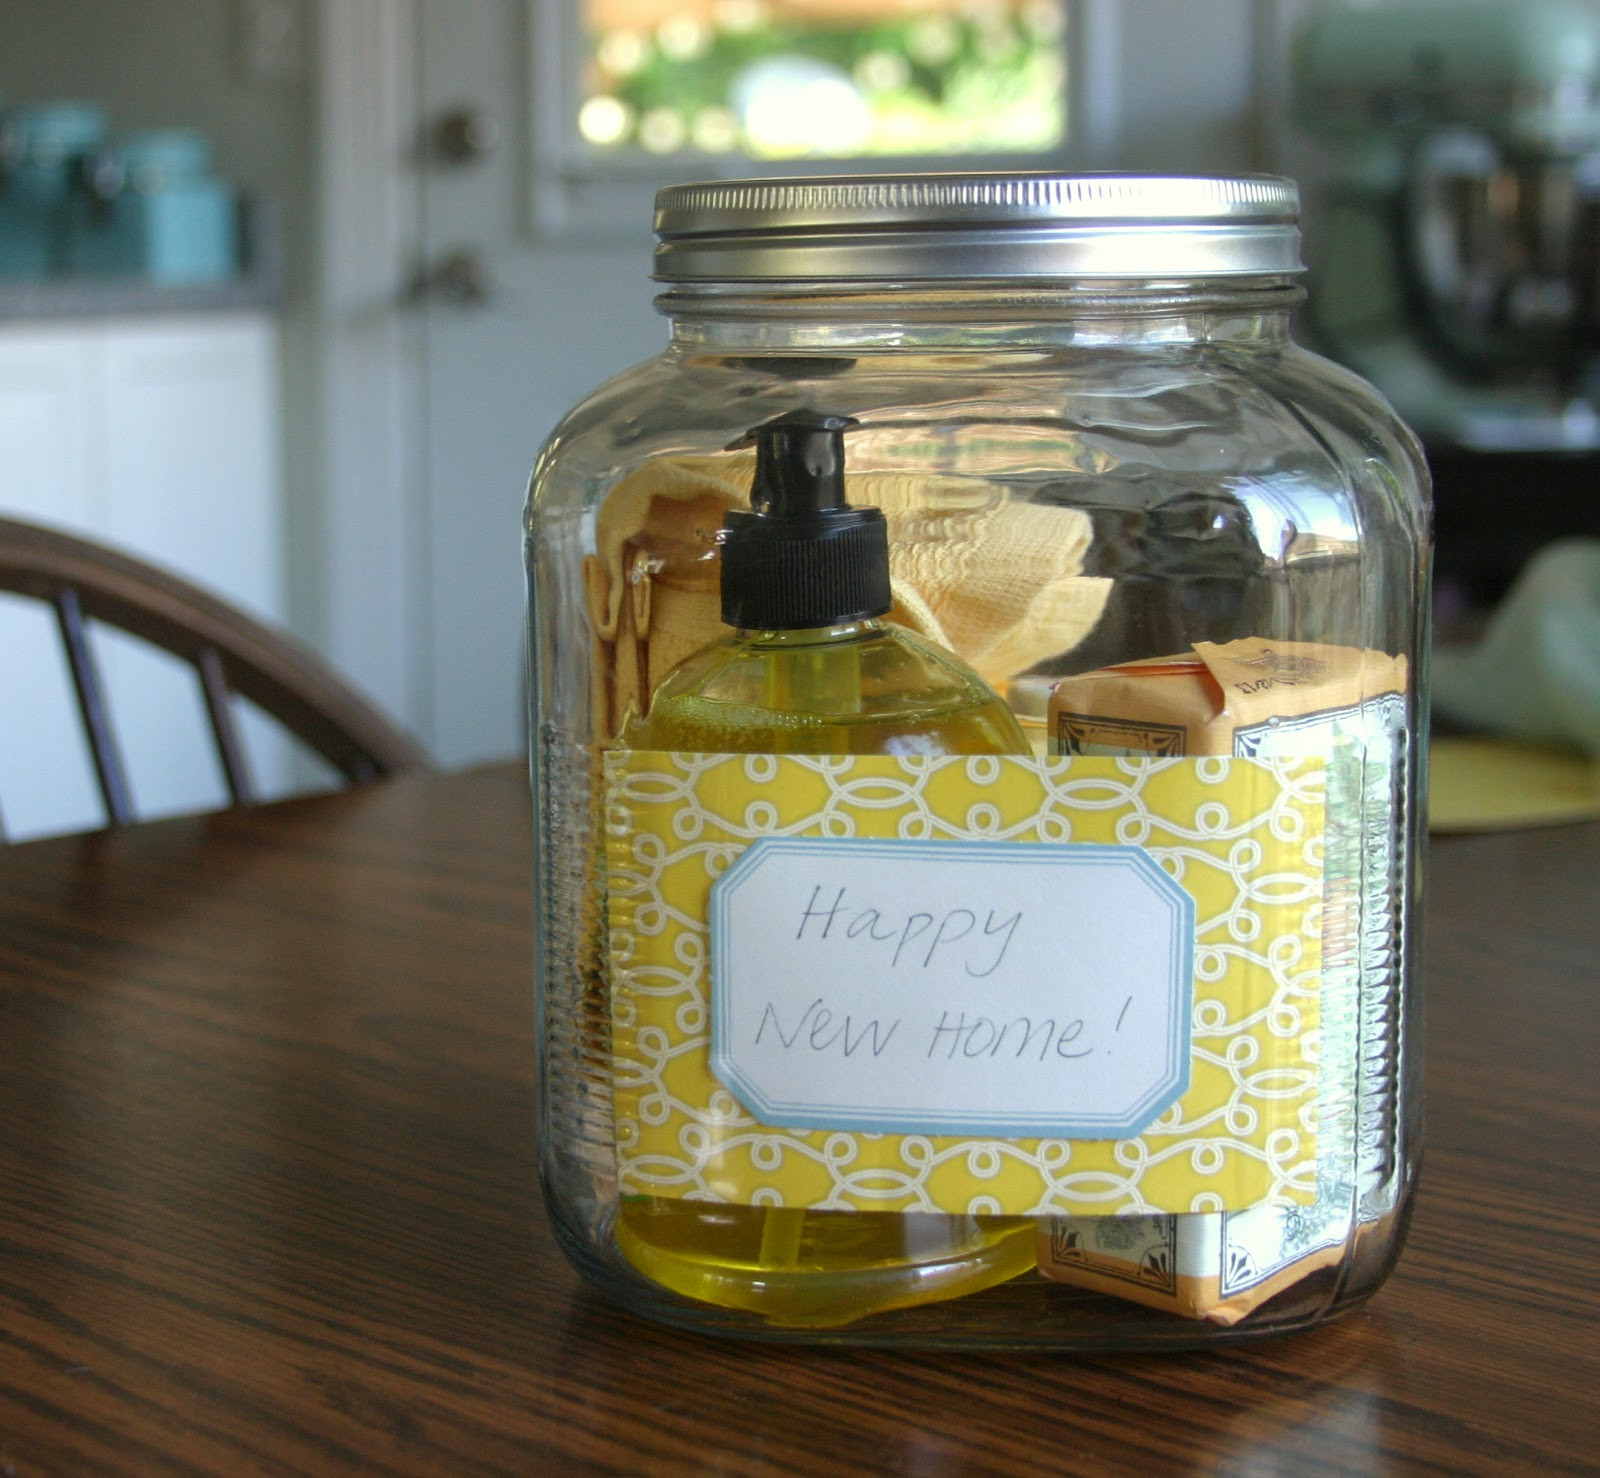 Best ideas about New Home Gift Ideas . Save or Pin make bake and love Happy New Home Gift Idea Now.